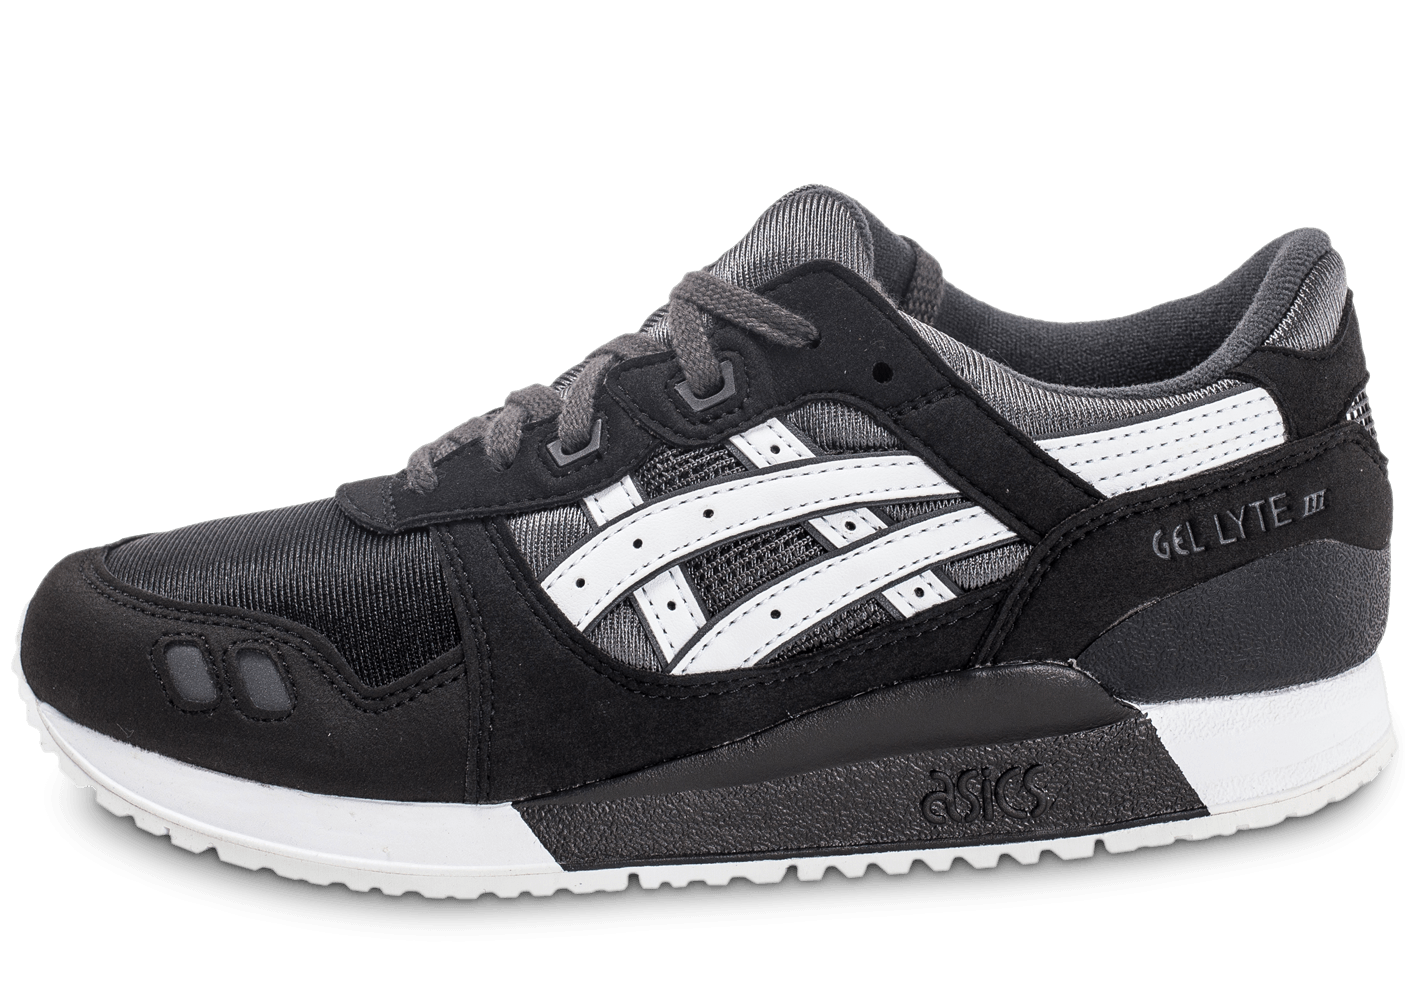 asics gel lyte 3 noir et blanche. Black Bedroom Furniture Sets. Home Design Ideas